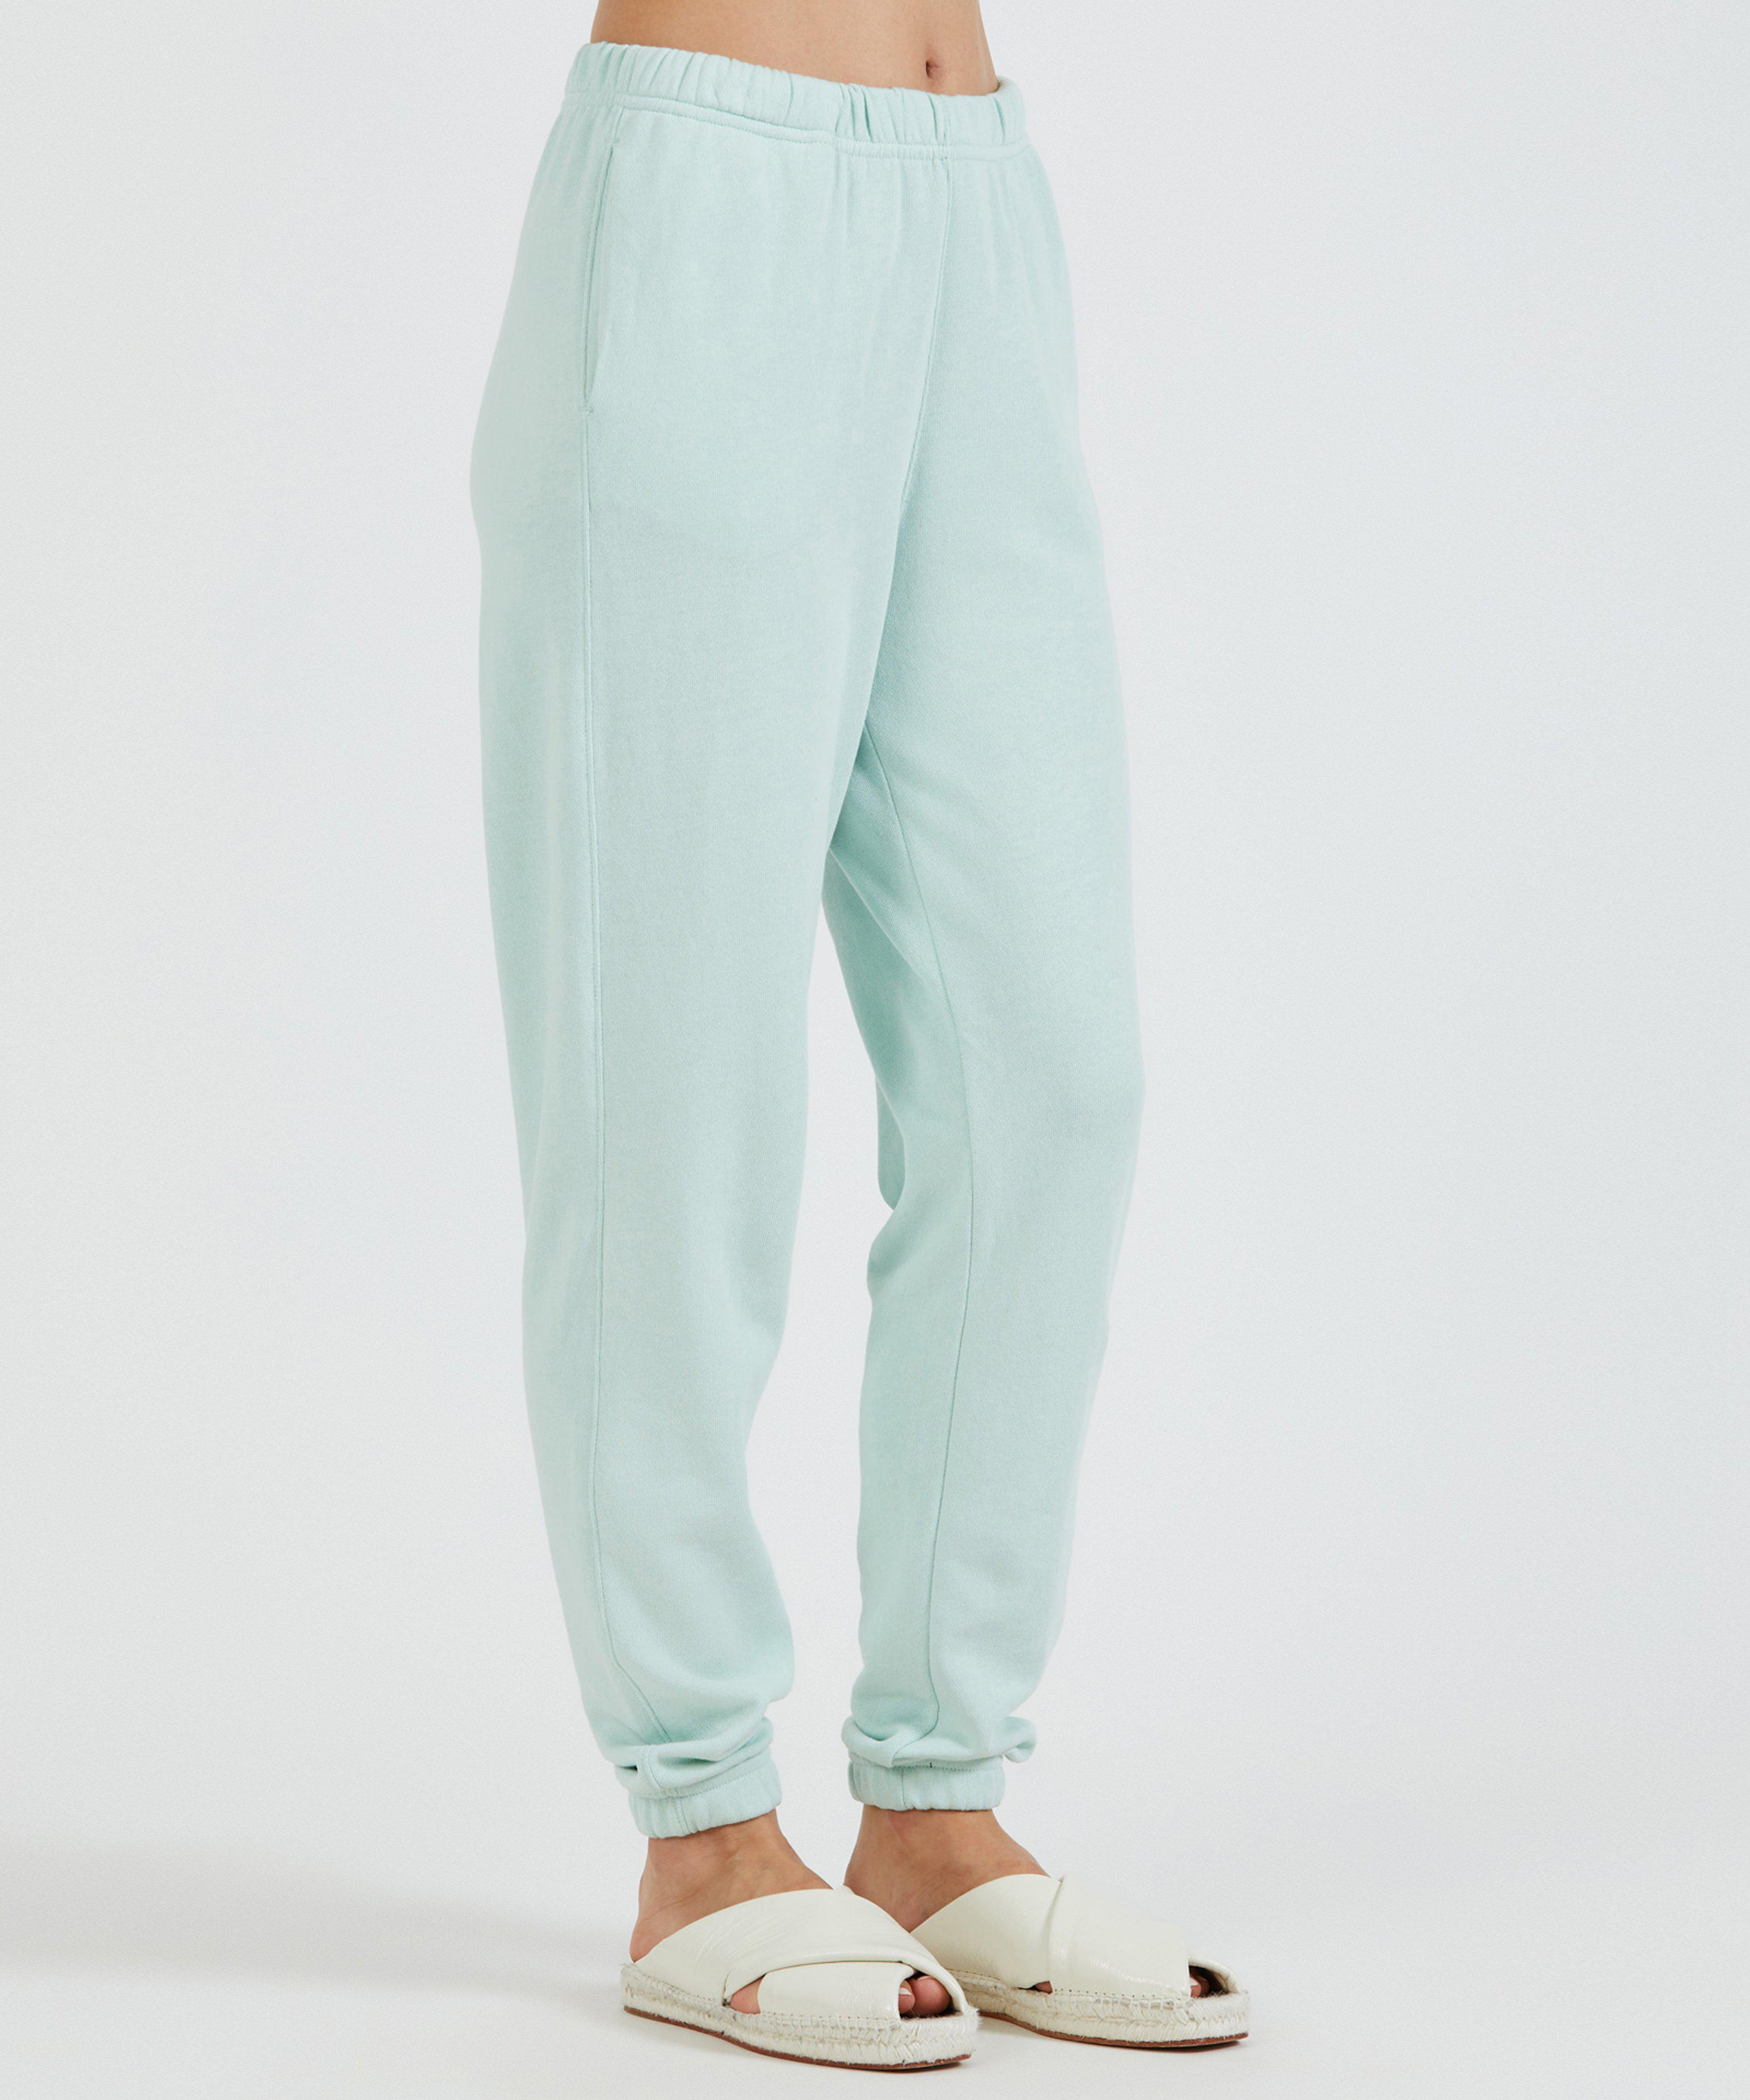 French Terry Pull-On Pant - Mint 1